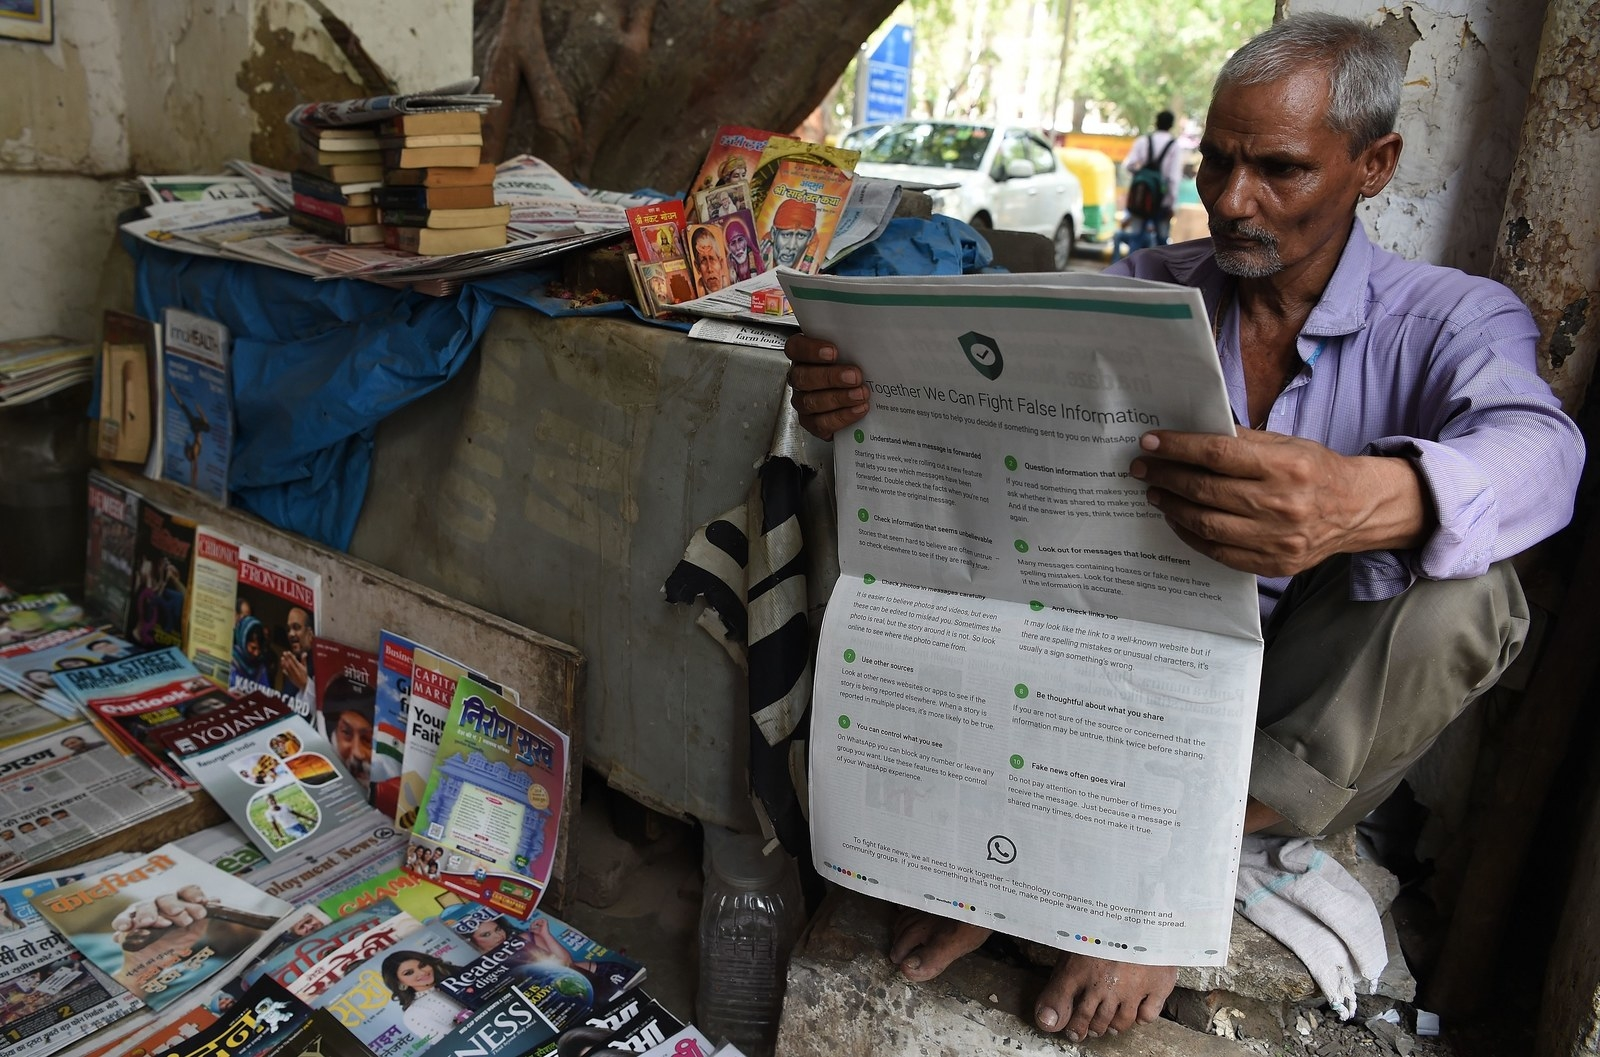 An Indian newspaper vendor reading a newspaper with a full backpage advertisement from WhatsApp intended to counter fake information, in New Delhi, on July 10, 2018.